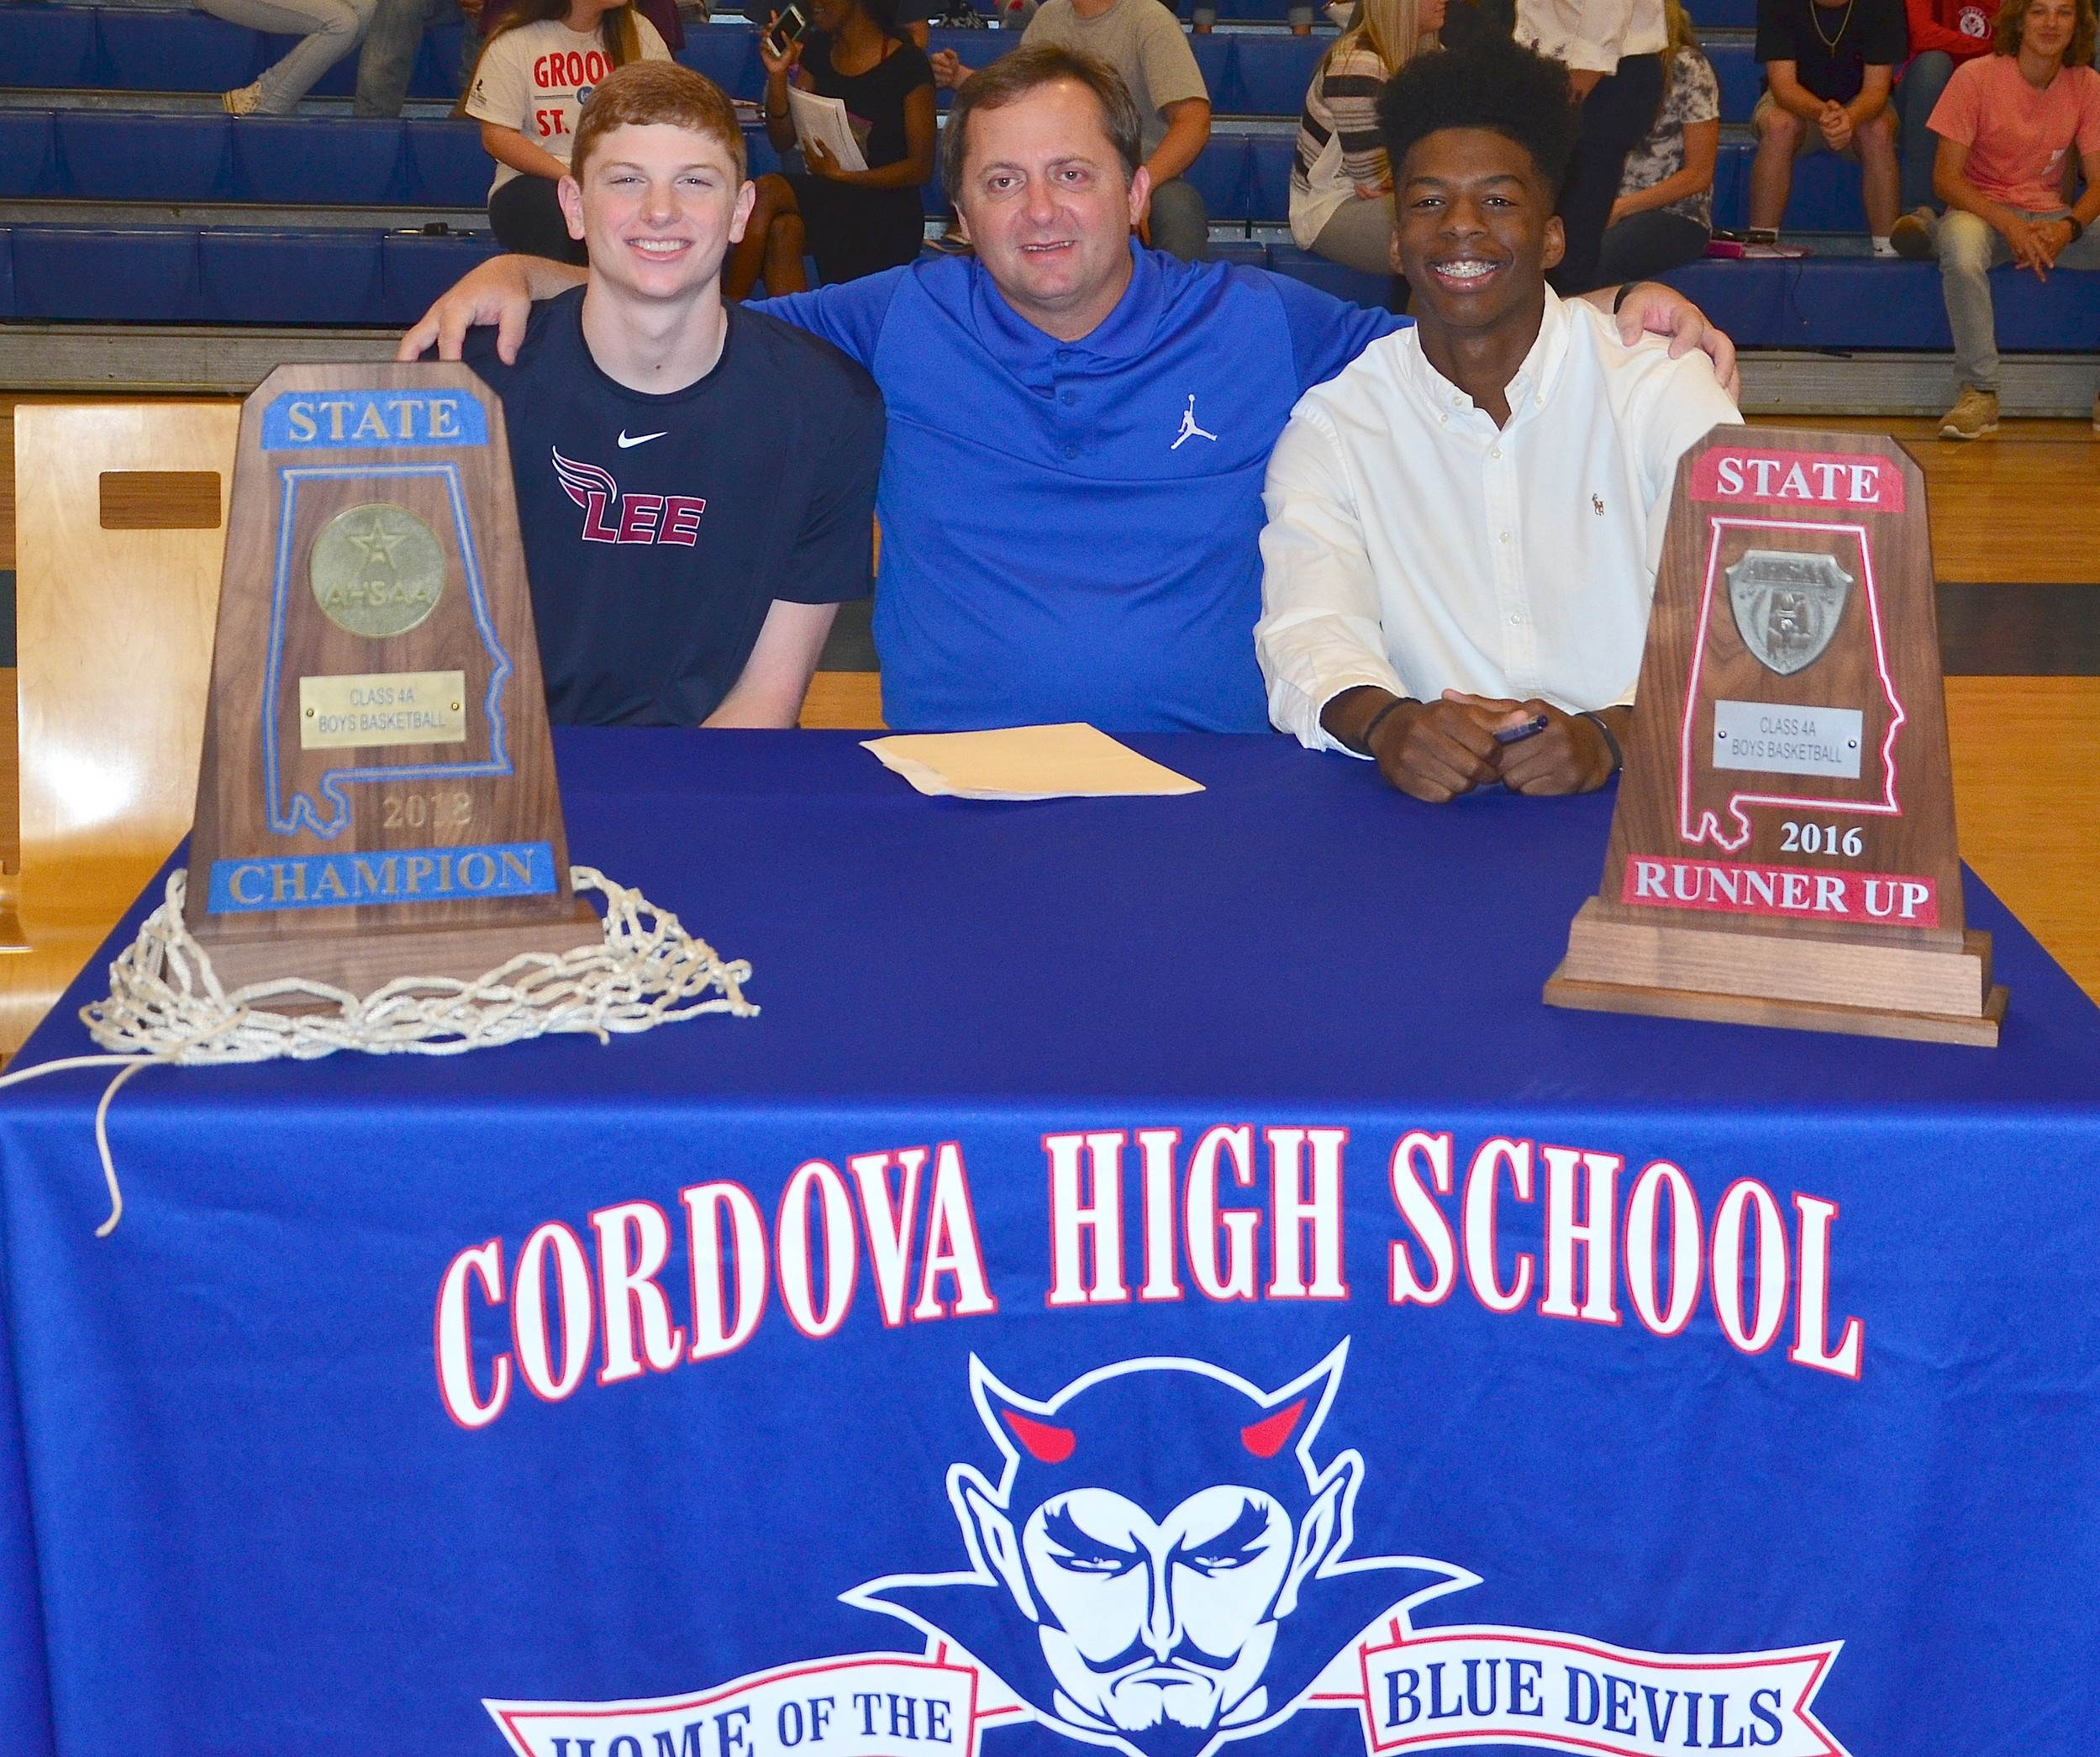 Cordova basketball coach Heath Burns sits between Jayce Willingham, left, and Isaac Chatman, right, after both players signed letters-of-intent on Thursday at the school. Willingham signed with Lee University, a Division II school in Tennessee, while Chatman signed with Campbell University, a Division I school in North Carolina. Both players helped lead Cordova to the Class 4A state title in March.